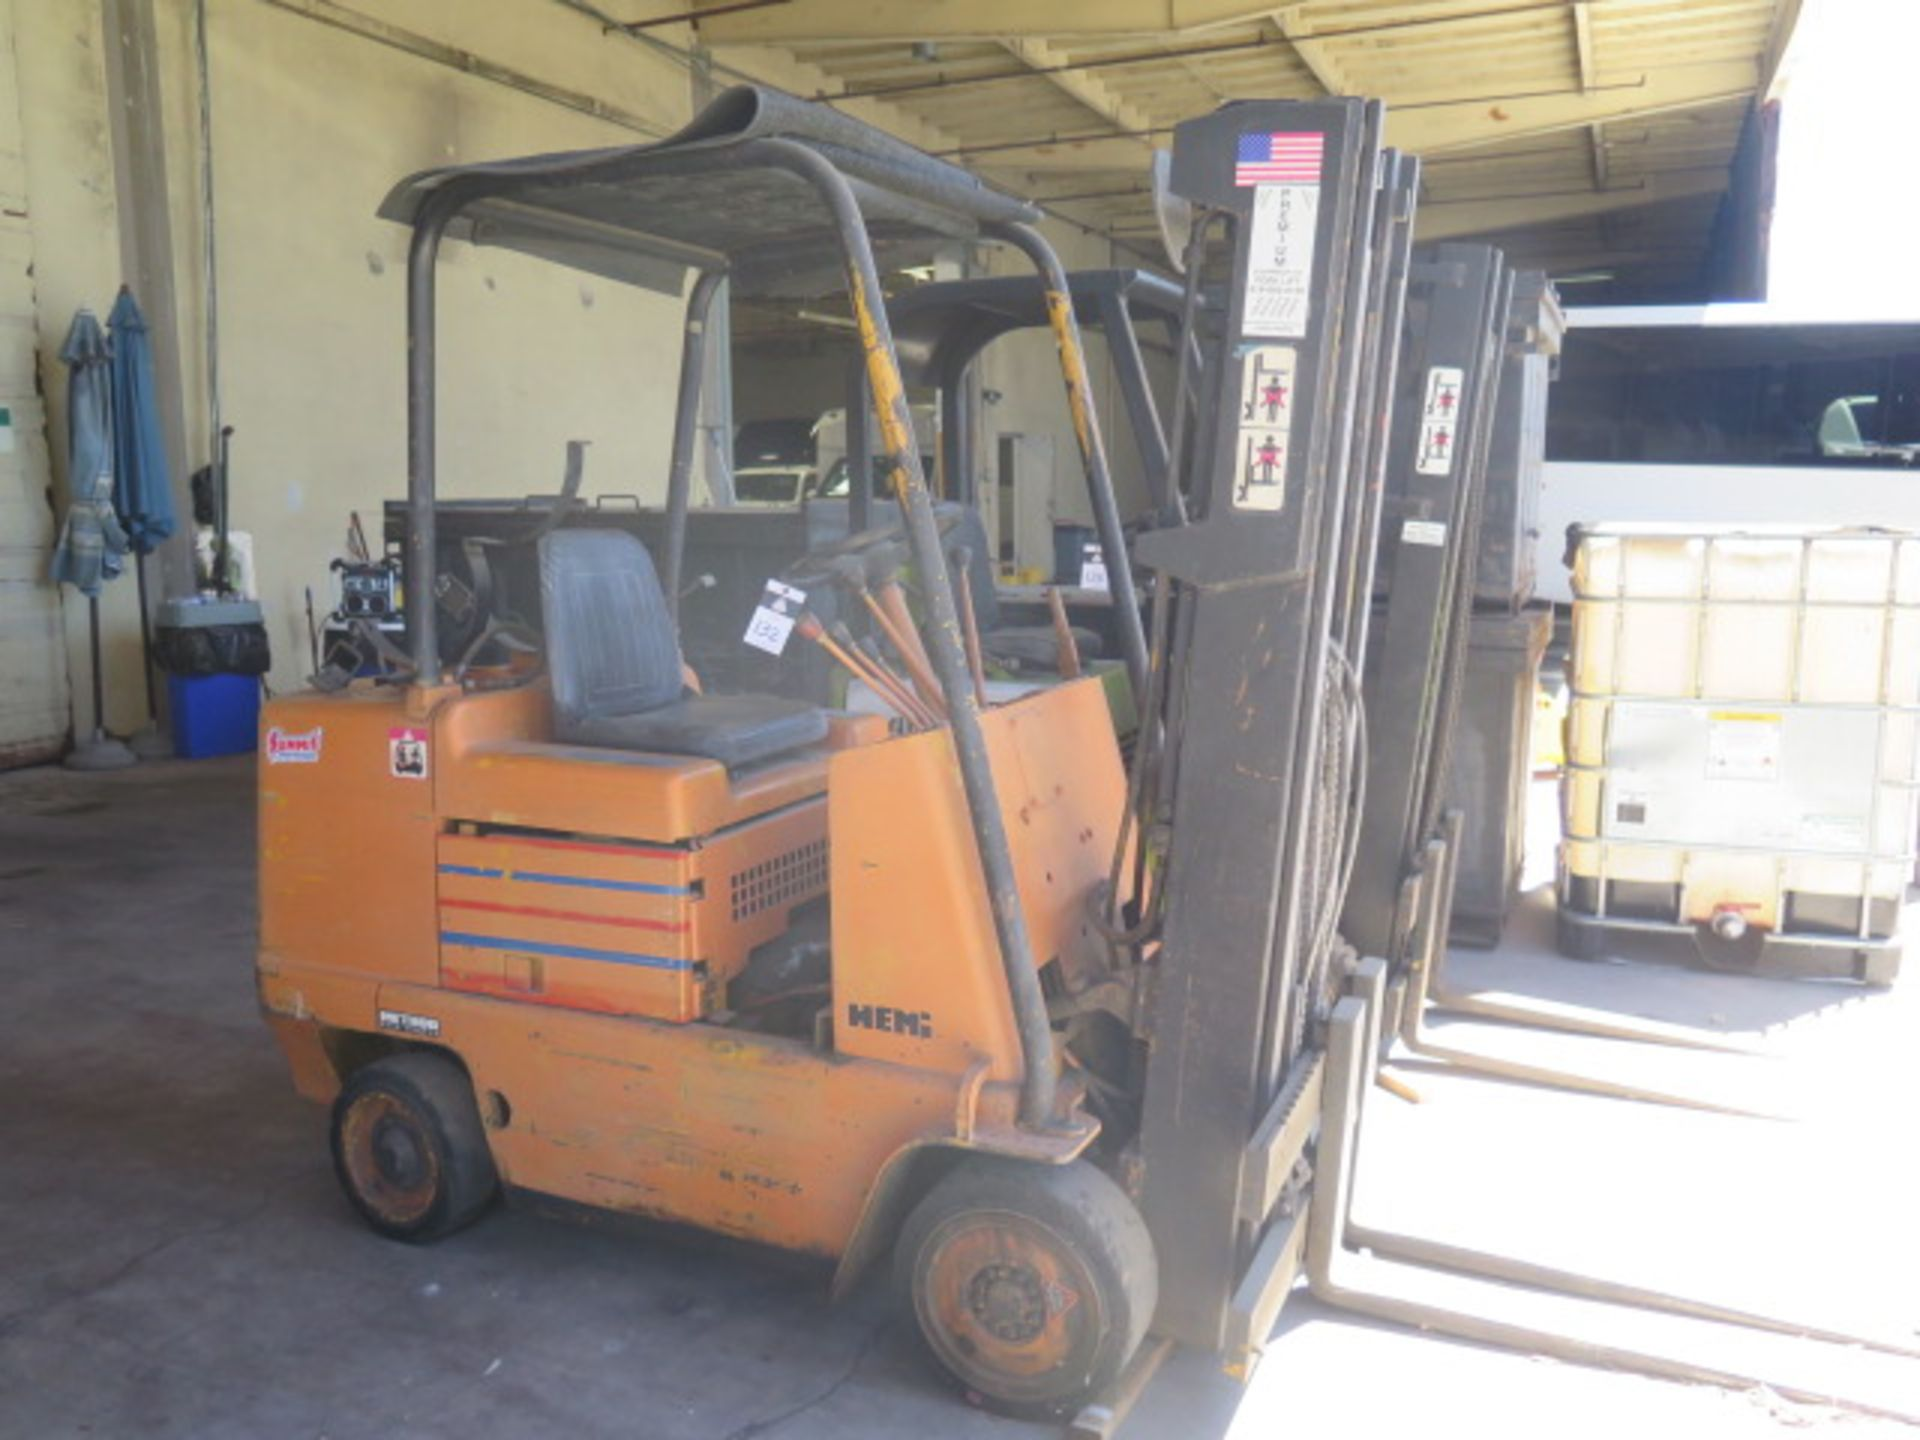 Caterpillar 4500 Lb Cap LPG Forklift s/n F235-83-2201172 (Condition Unknown) SOLD AS-IS